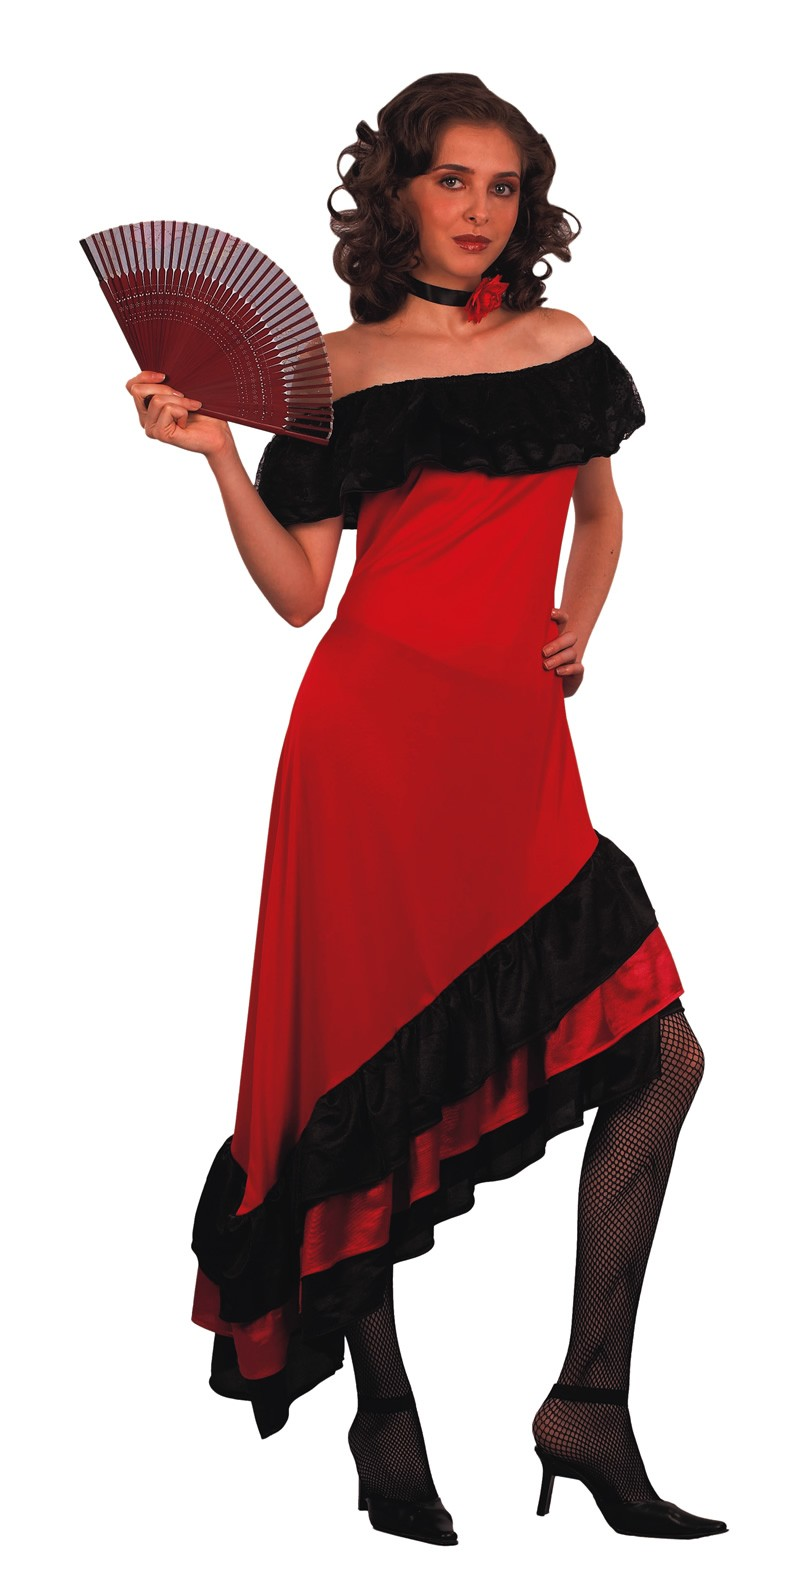 FLAMENCO LATIN DANCER RED & BLACK FRILLED DRESS